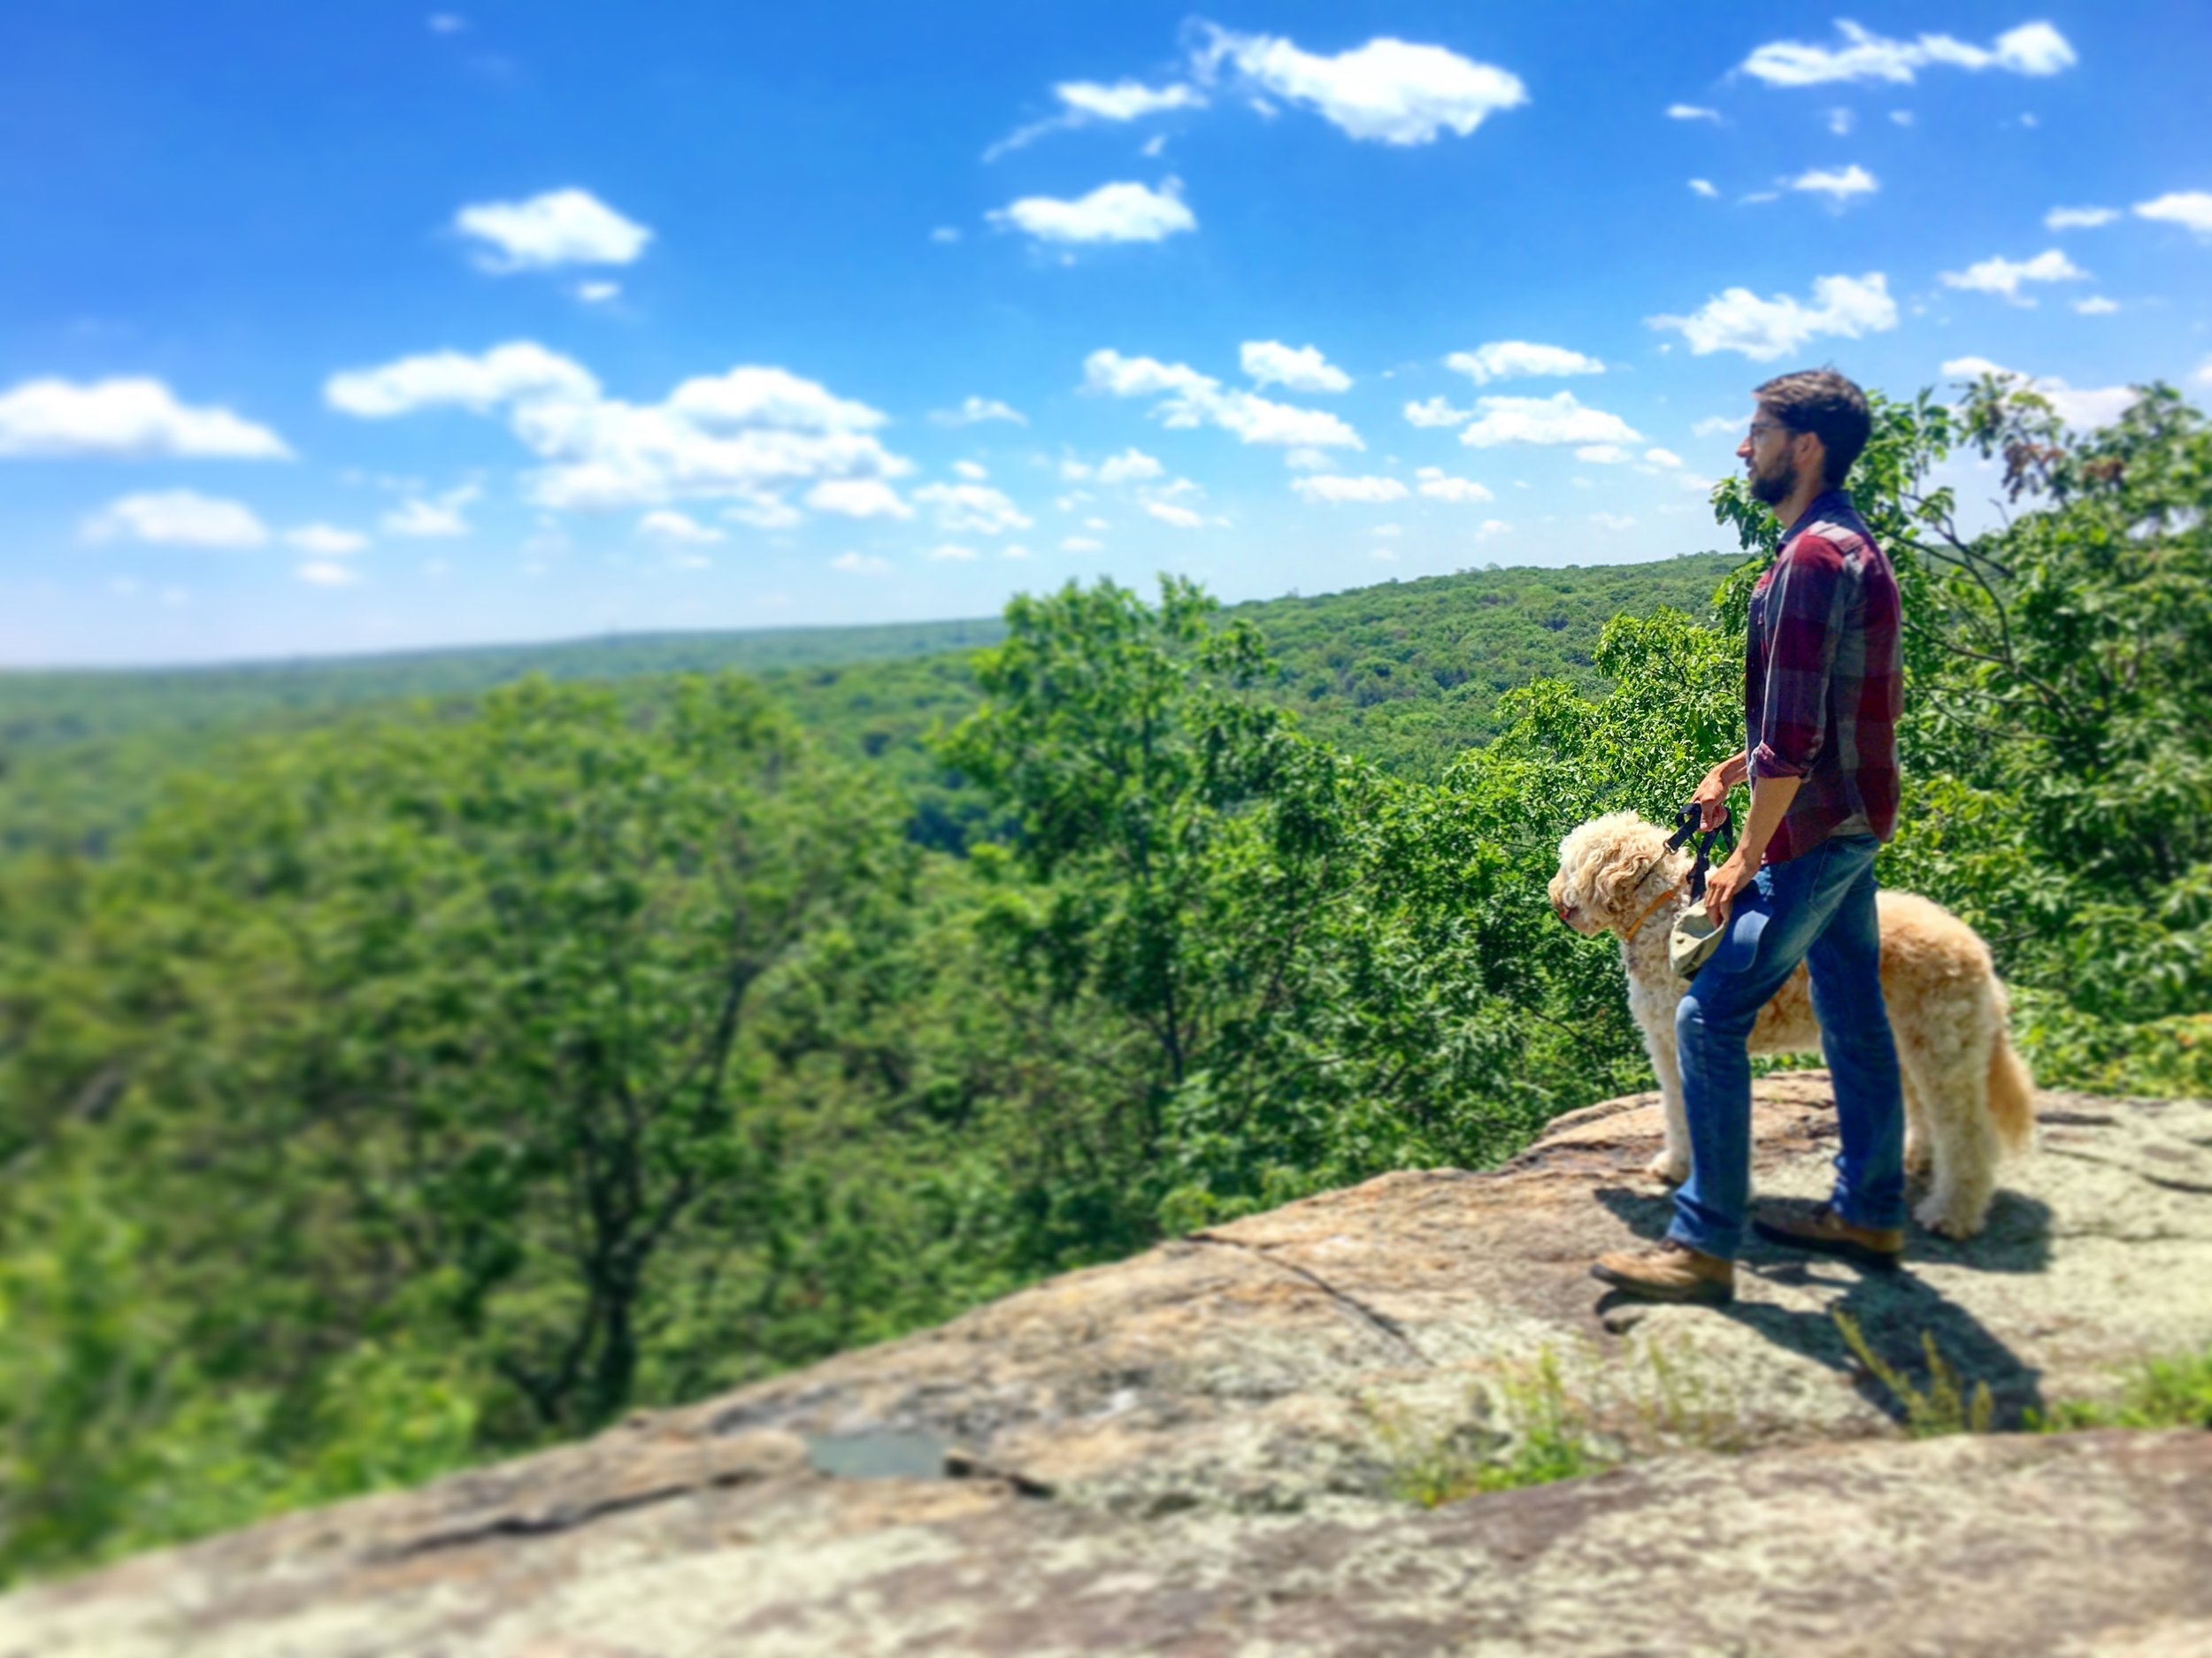 Carson and Stello at Headley Overlook in Mahlon Dickerson Reservation.